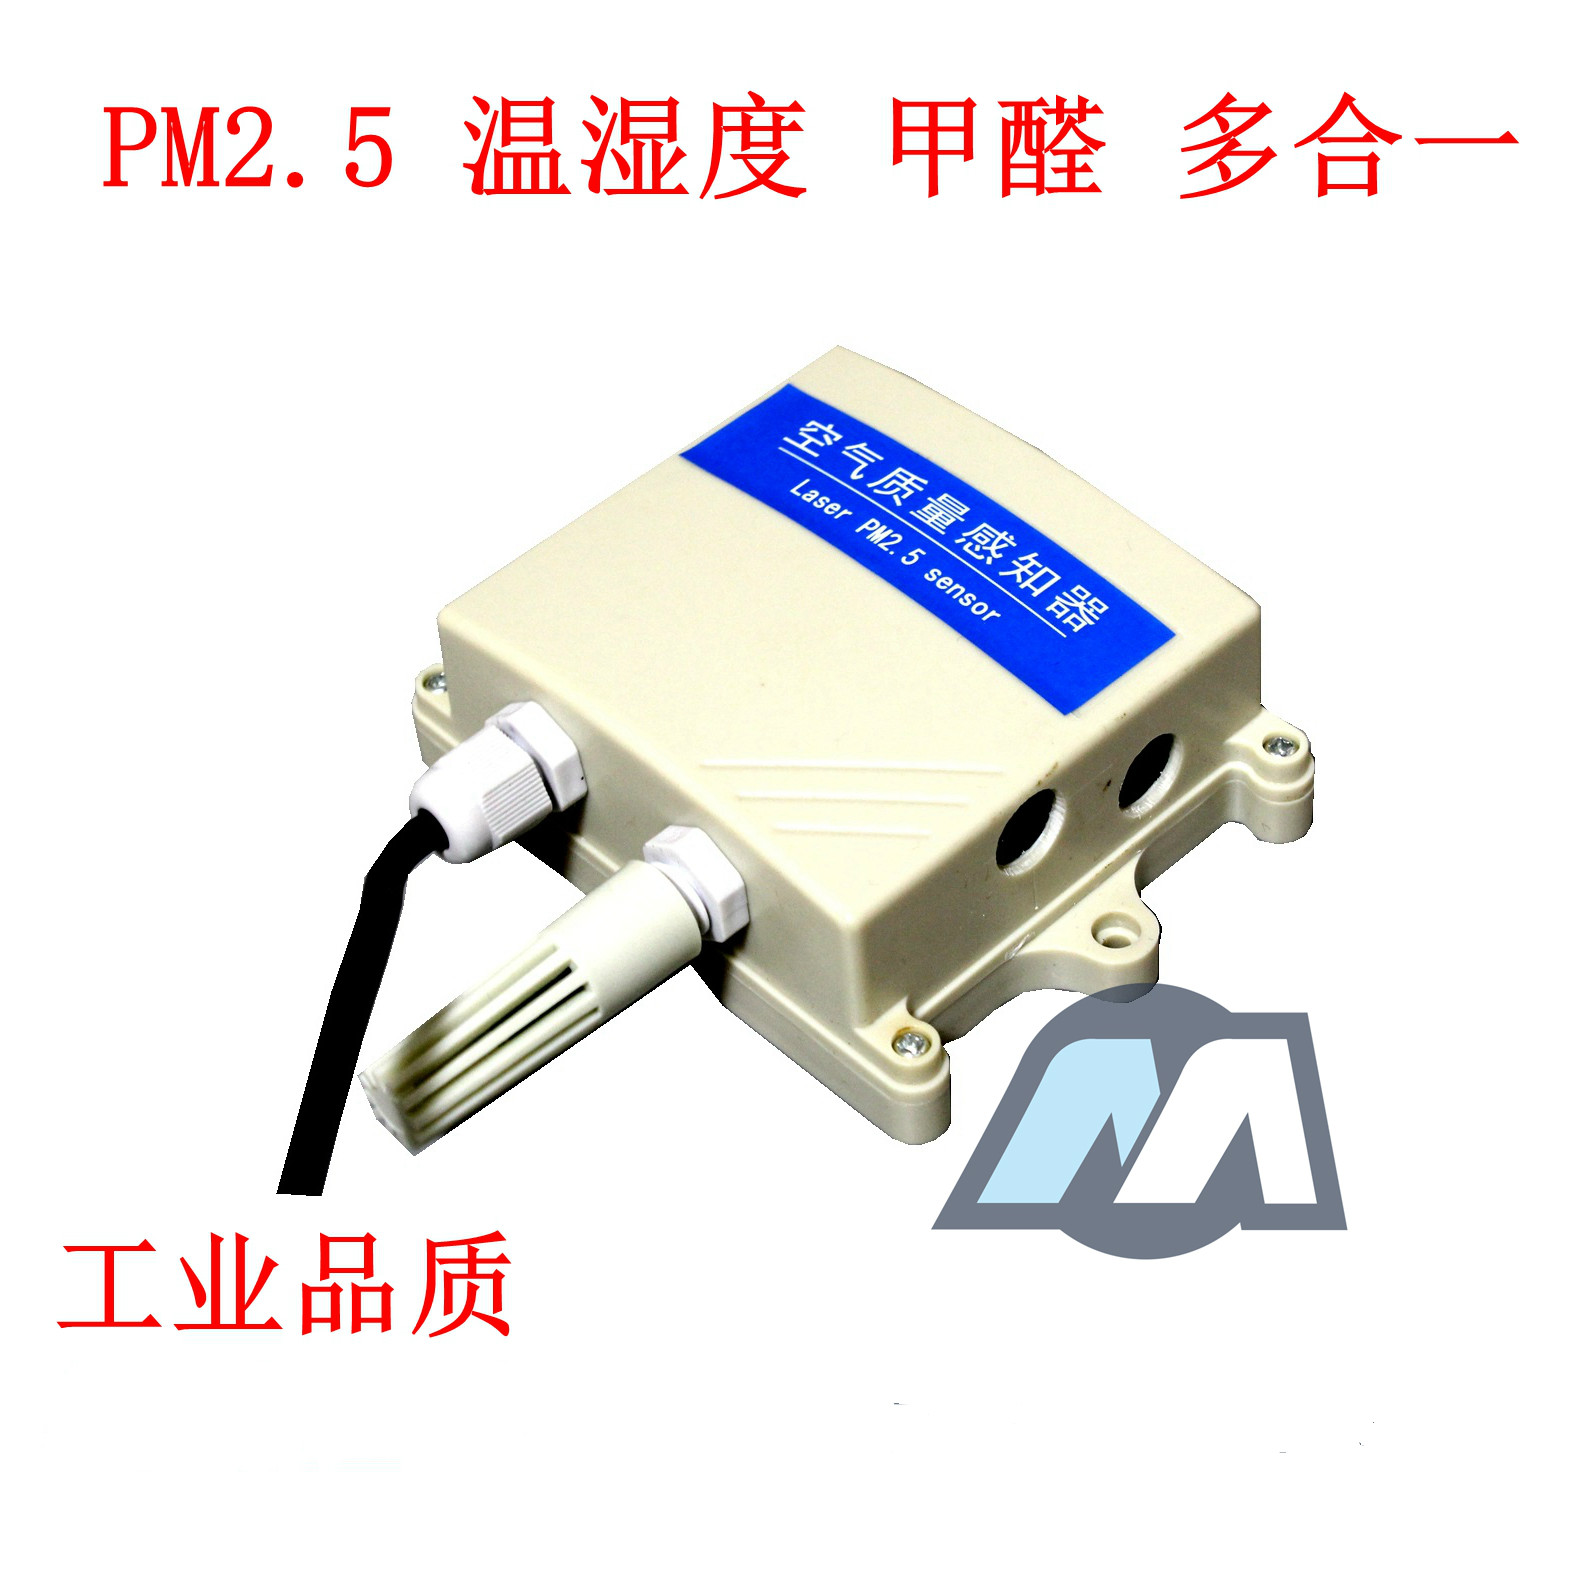 PM2.5 Formaldehyde Temperature and Humidity Sensor Laser RS485 MODBUS Protocol Supports PLC and PC Recommendation. digital temperature and humidity sensor modbus 4 20ma wifi rs485 development board graduation design